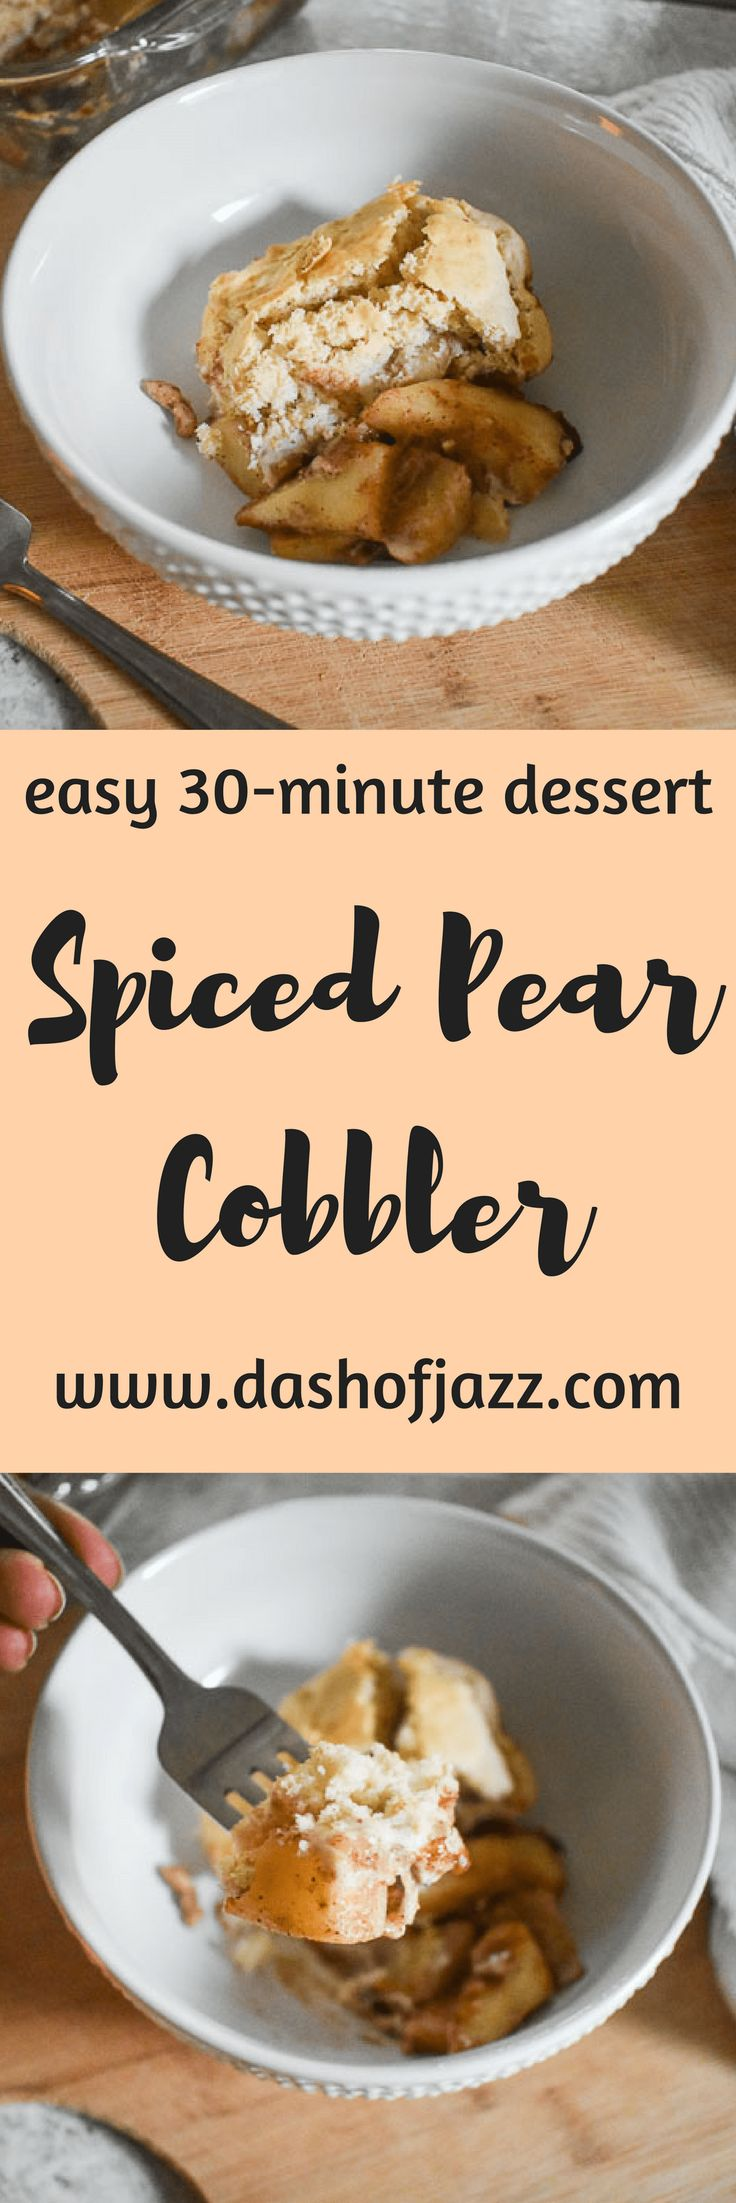 Simple Spiced Pear Cobbler is made with an easy scratch filling of crunchy pears and warm spices, and lightly sweet bisquick biscuit topping. Recipe by Dash of Jazz